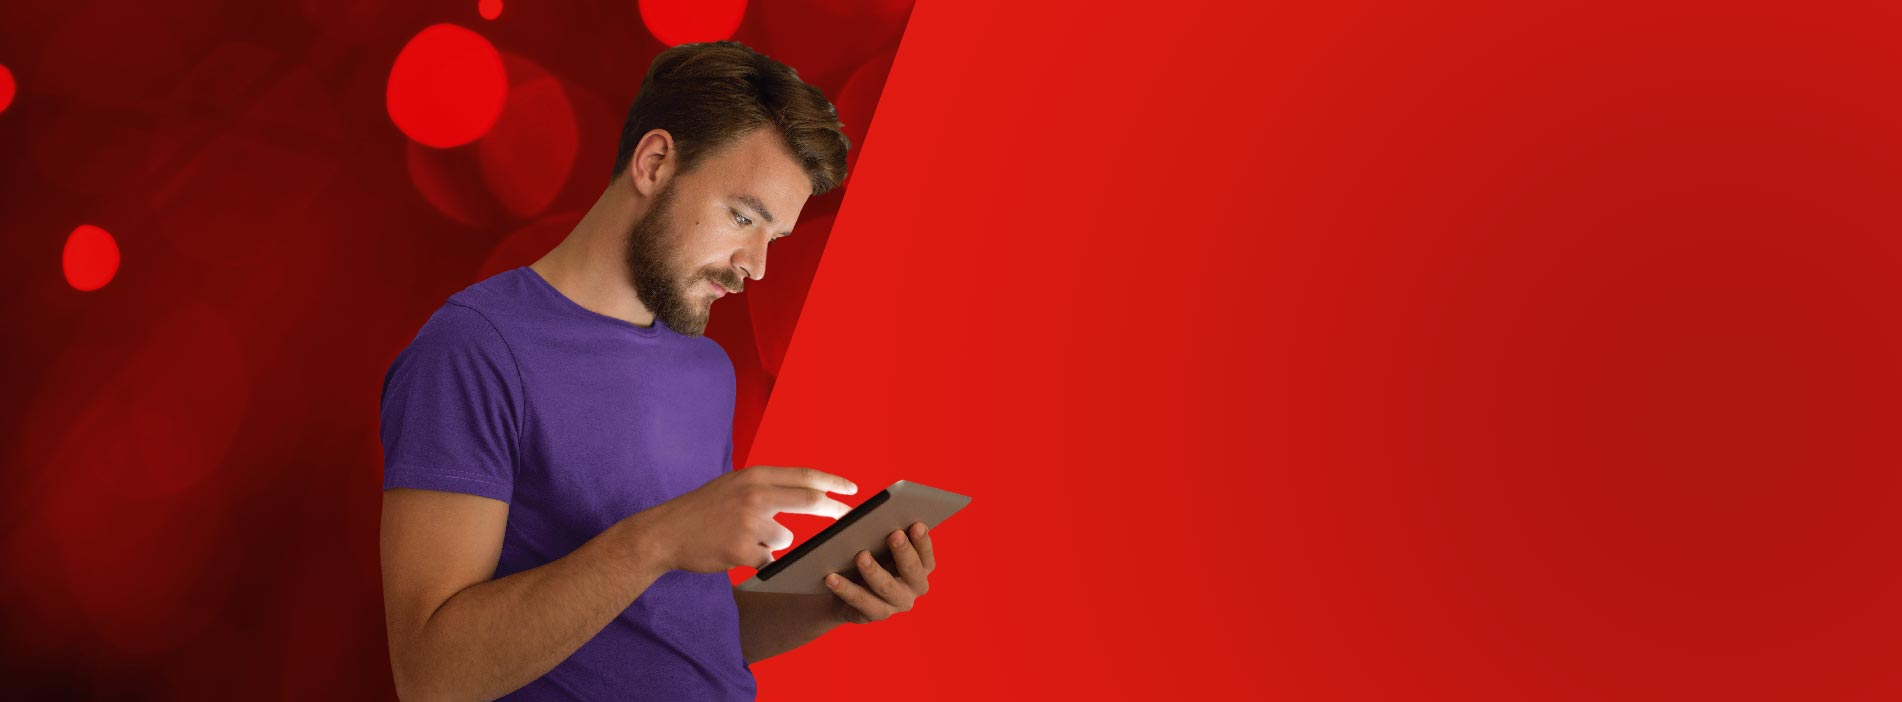 Personal account Adecco